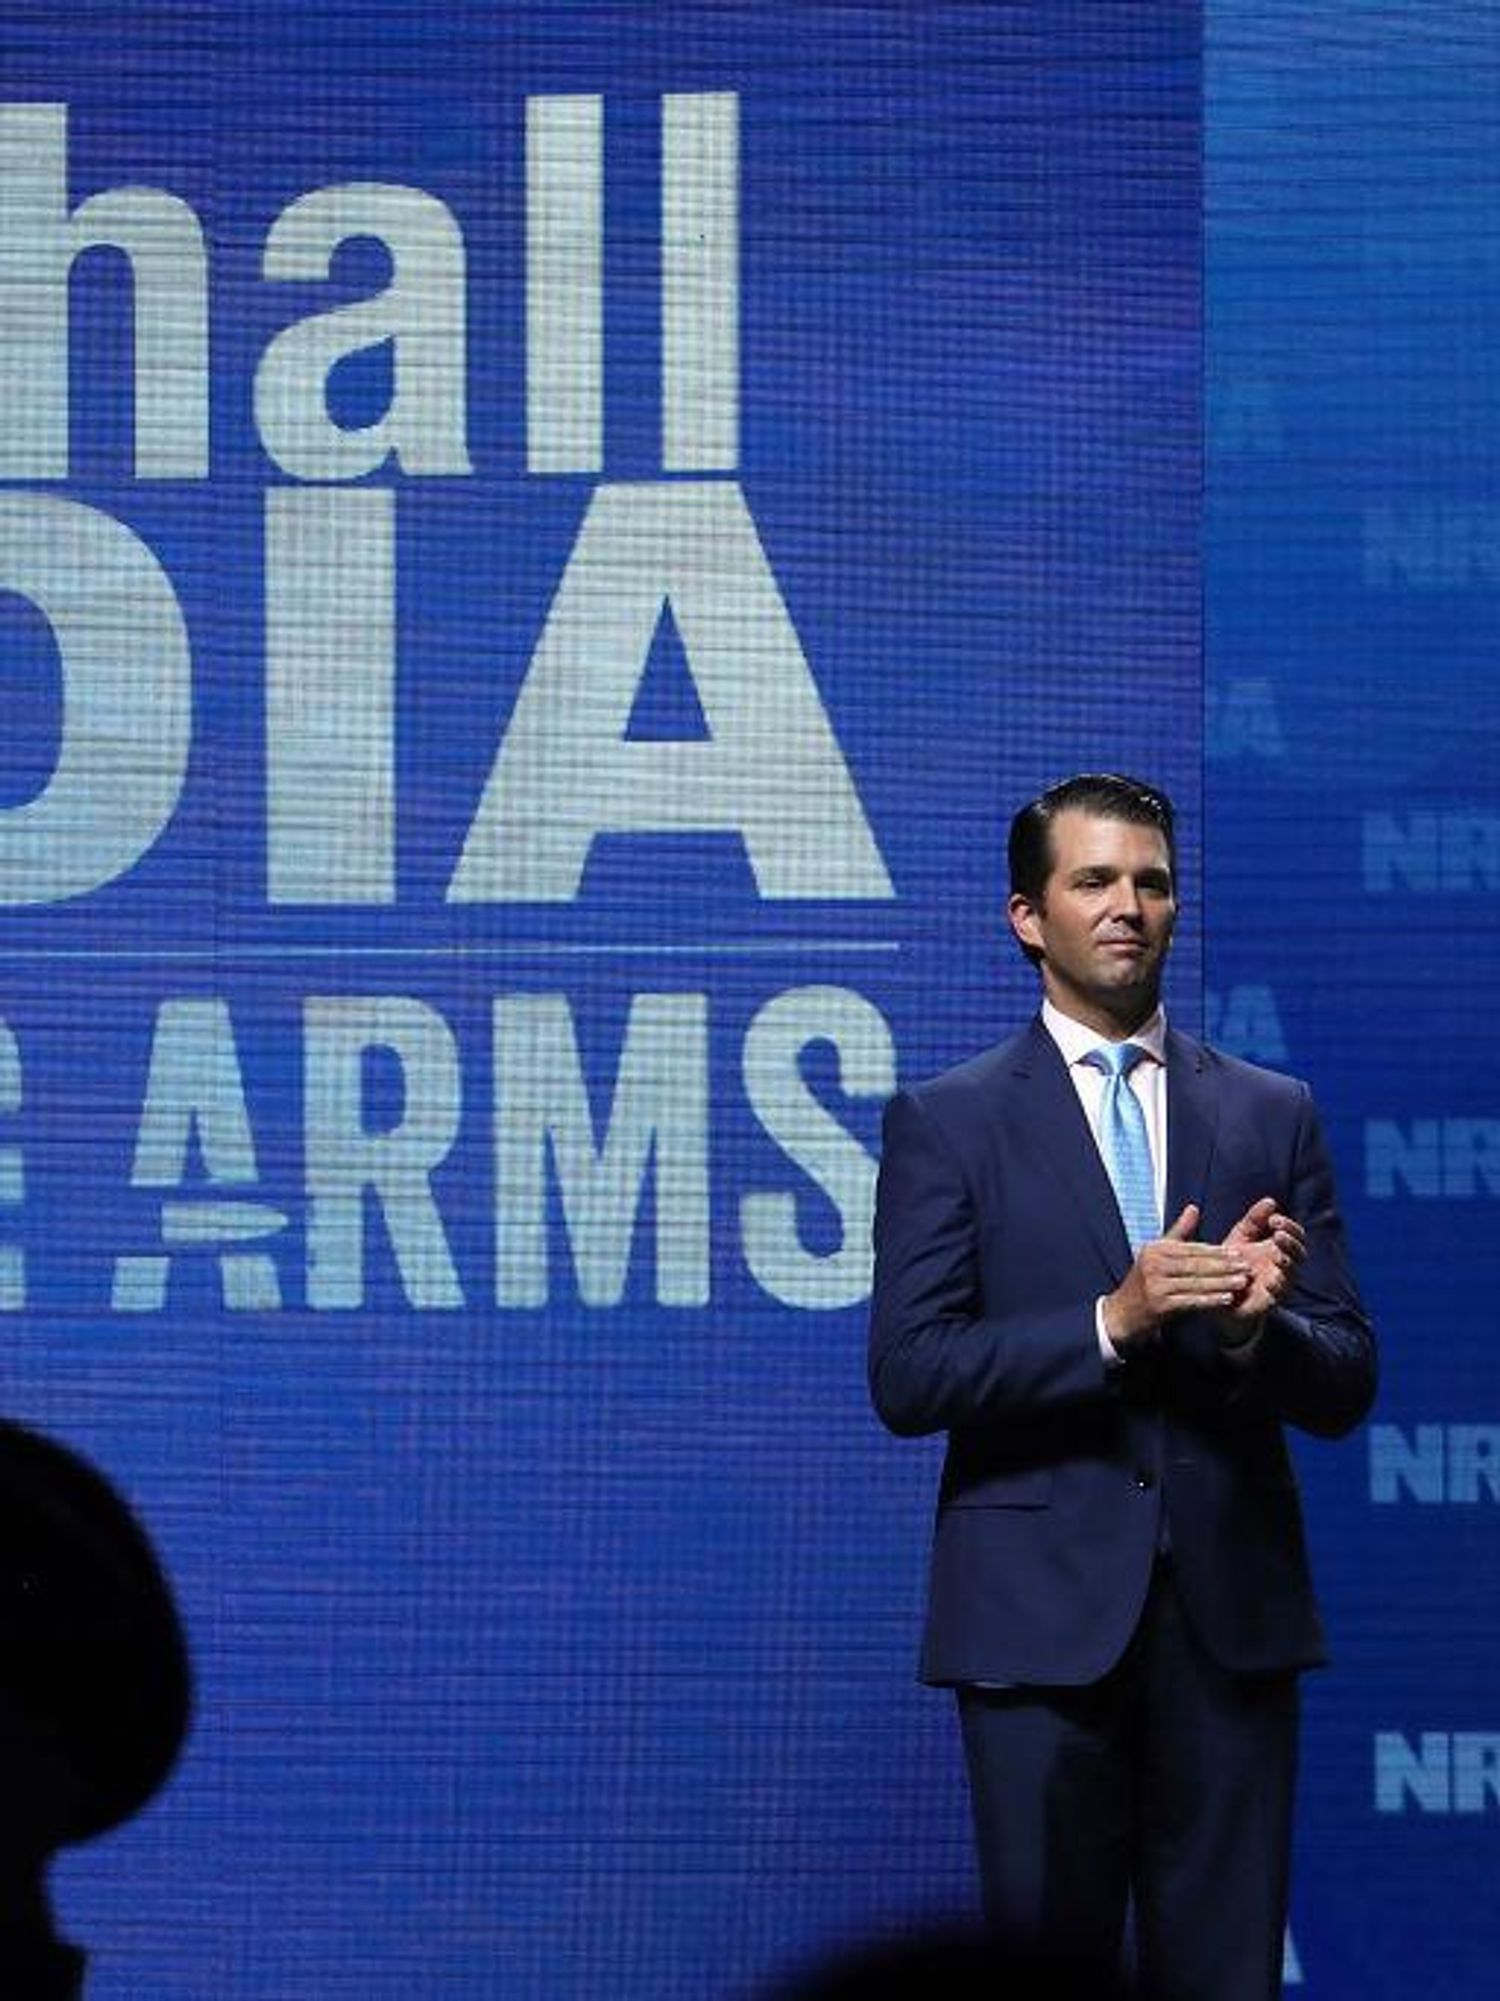 Report: Donald Trump Jr. could challenge Wayne LaPierre for leadership of the NRA